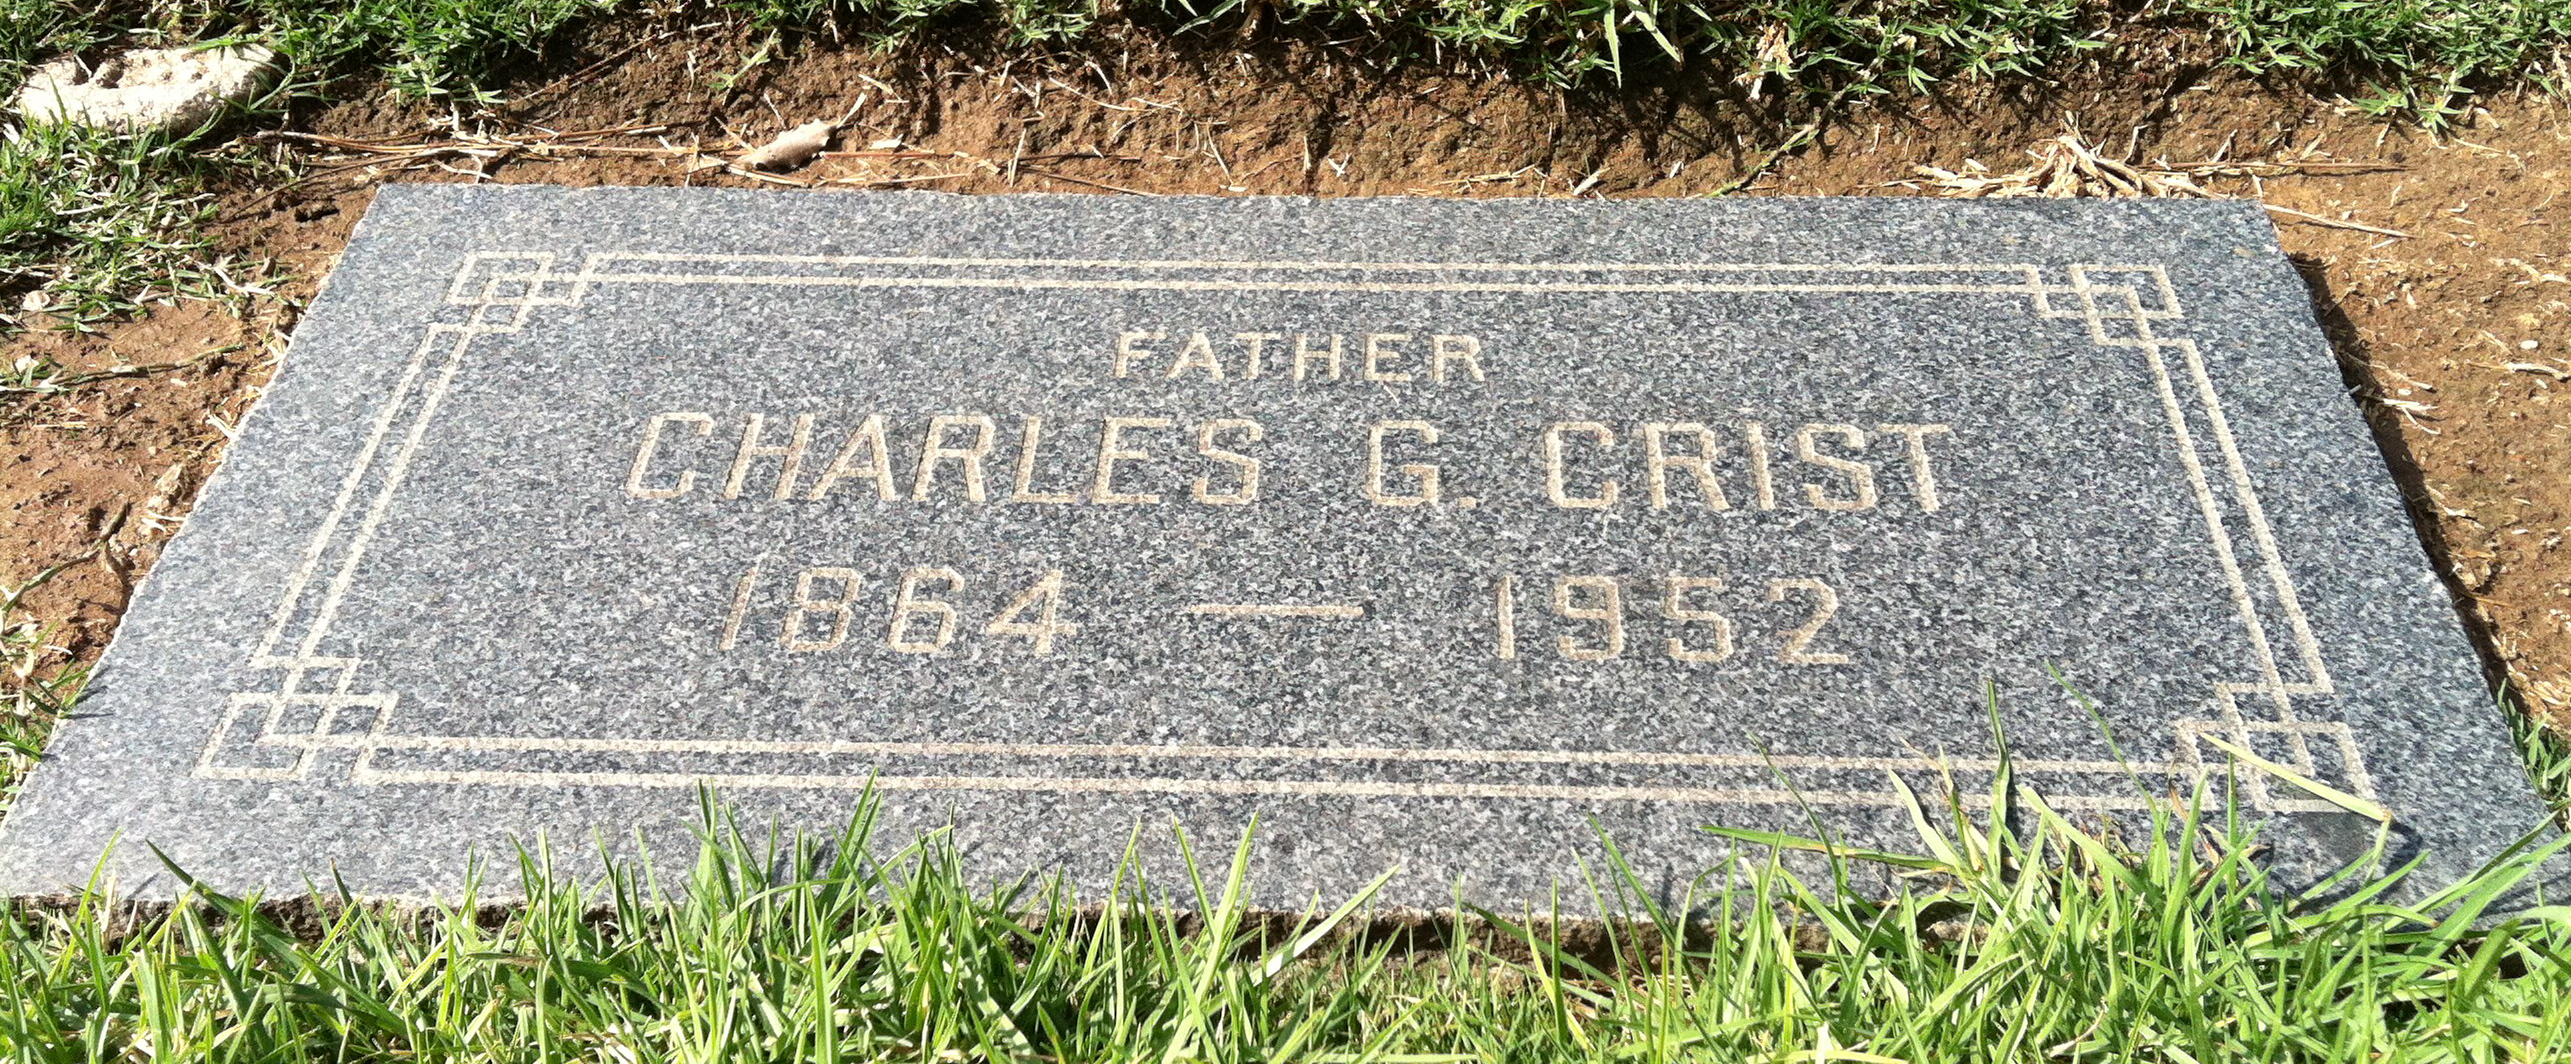 Charles Griffith Crist